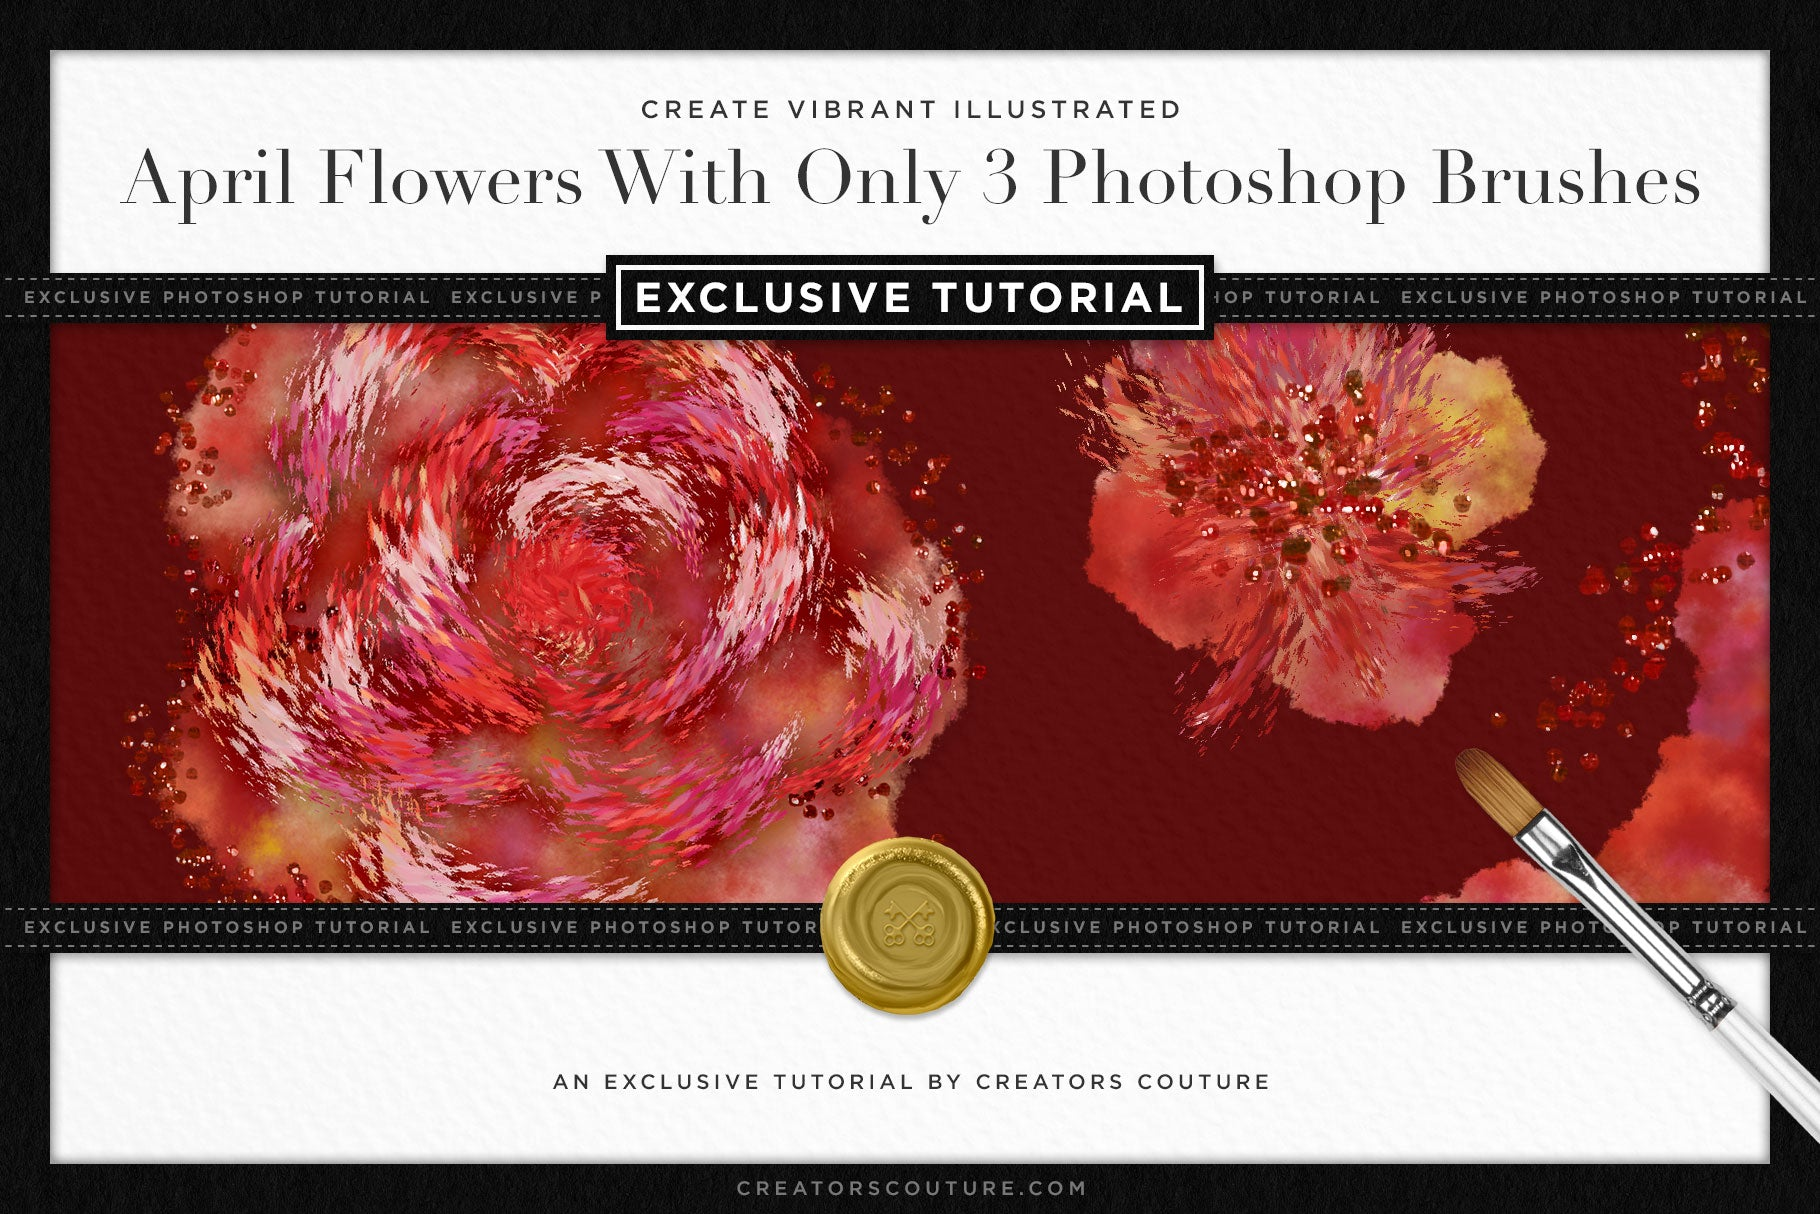 How to Illustrate Vibrant April Flowers with 3 Photoshop Brushes | Exclusive Photoshop Tutorial - Creators Couture